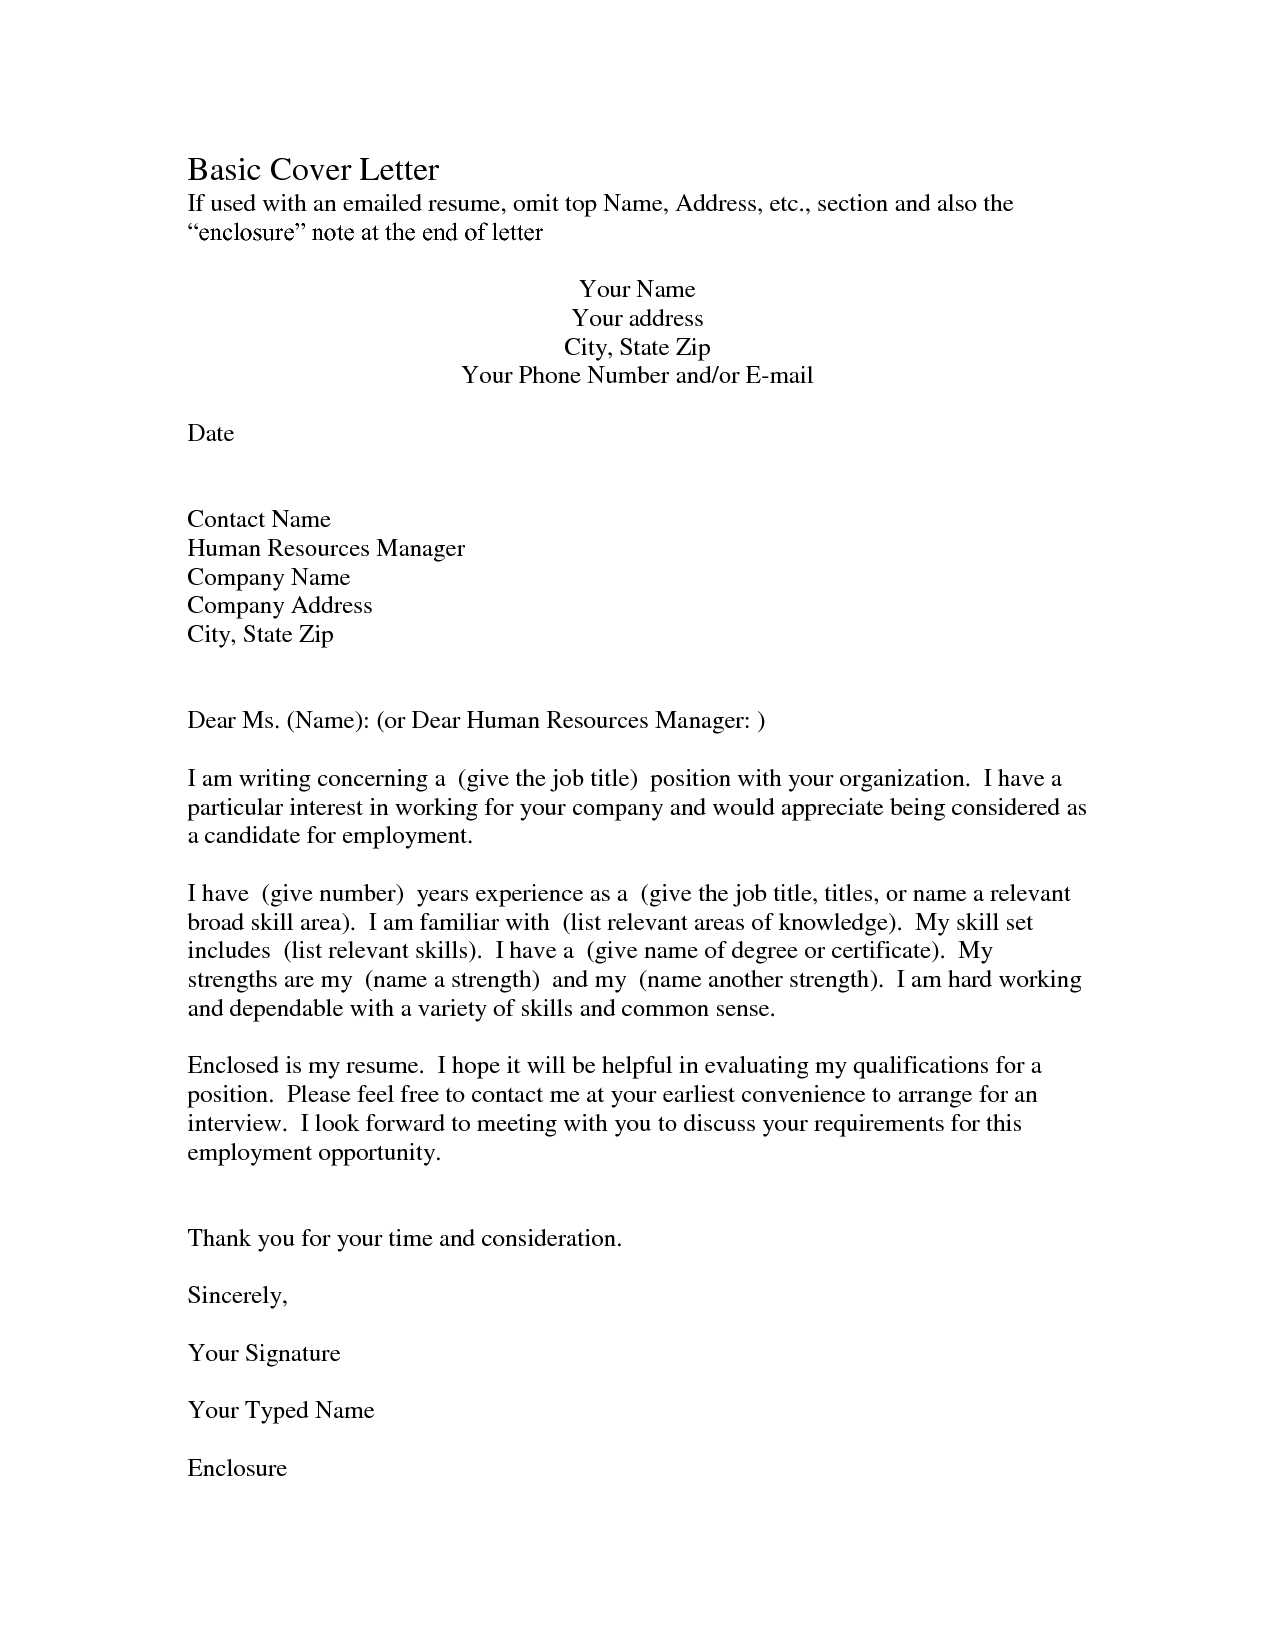 Employer Doesn T Offer Health Insurance Letter Template - This Cover Letter Sample Shows How A Resumes for Teachers Can Help